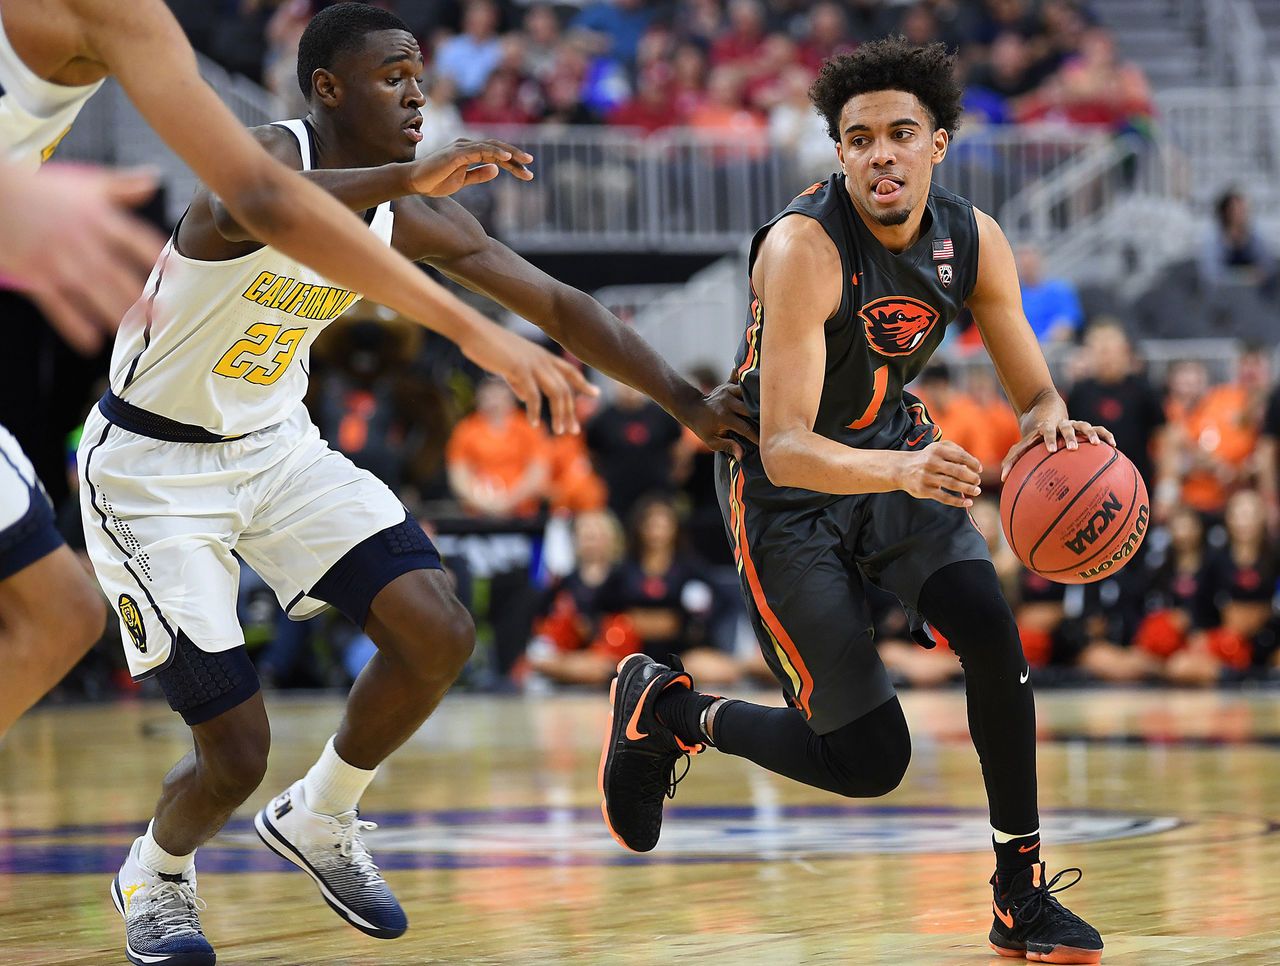 Cropped_2017-03-09t000608z_966612706_nocid_rtrmadp_3_ncaa-basketball-pac-12-conference-tournament-california-vs-oregon-state